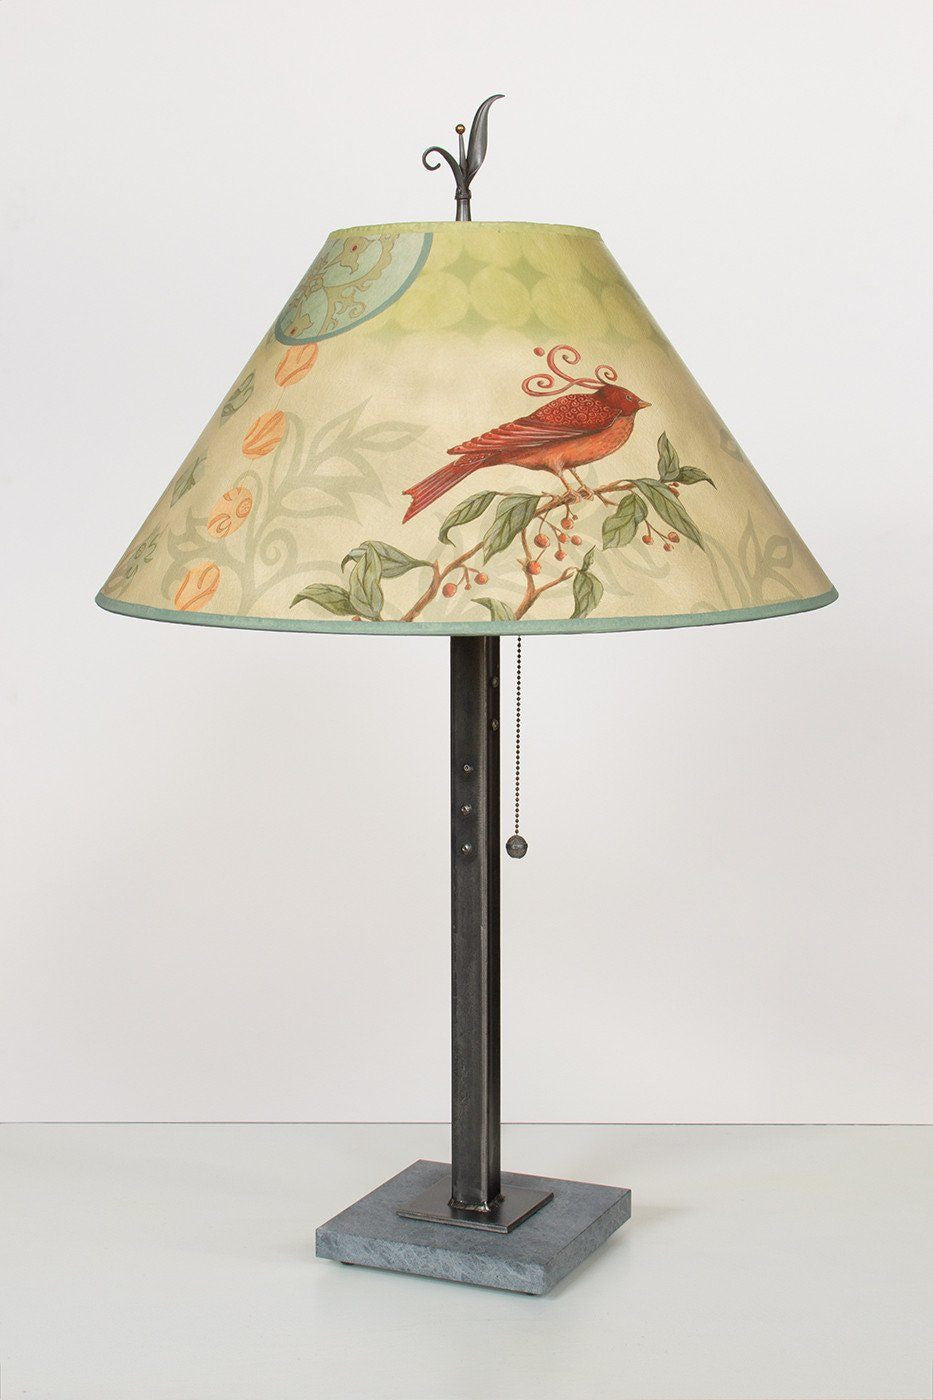 Steel Table Lamp on Italian Marble with Large Conical Shade in Birdscape